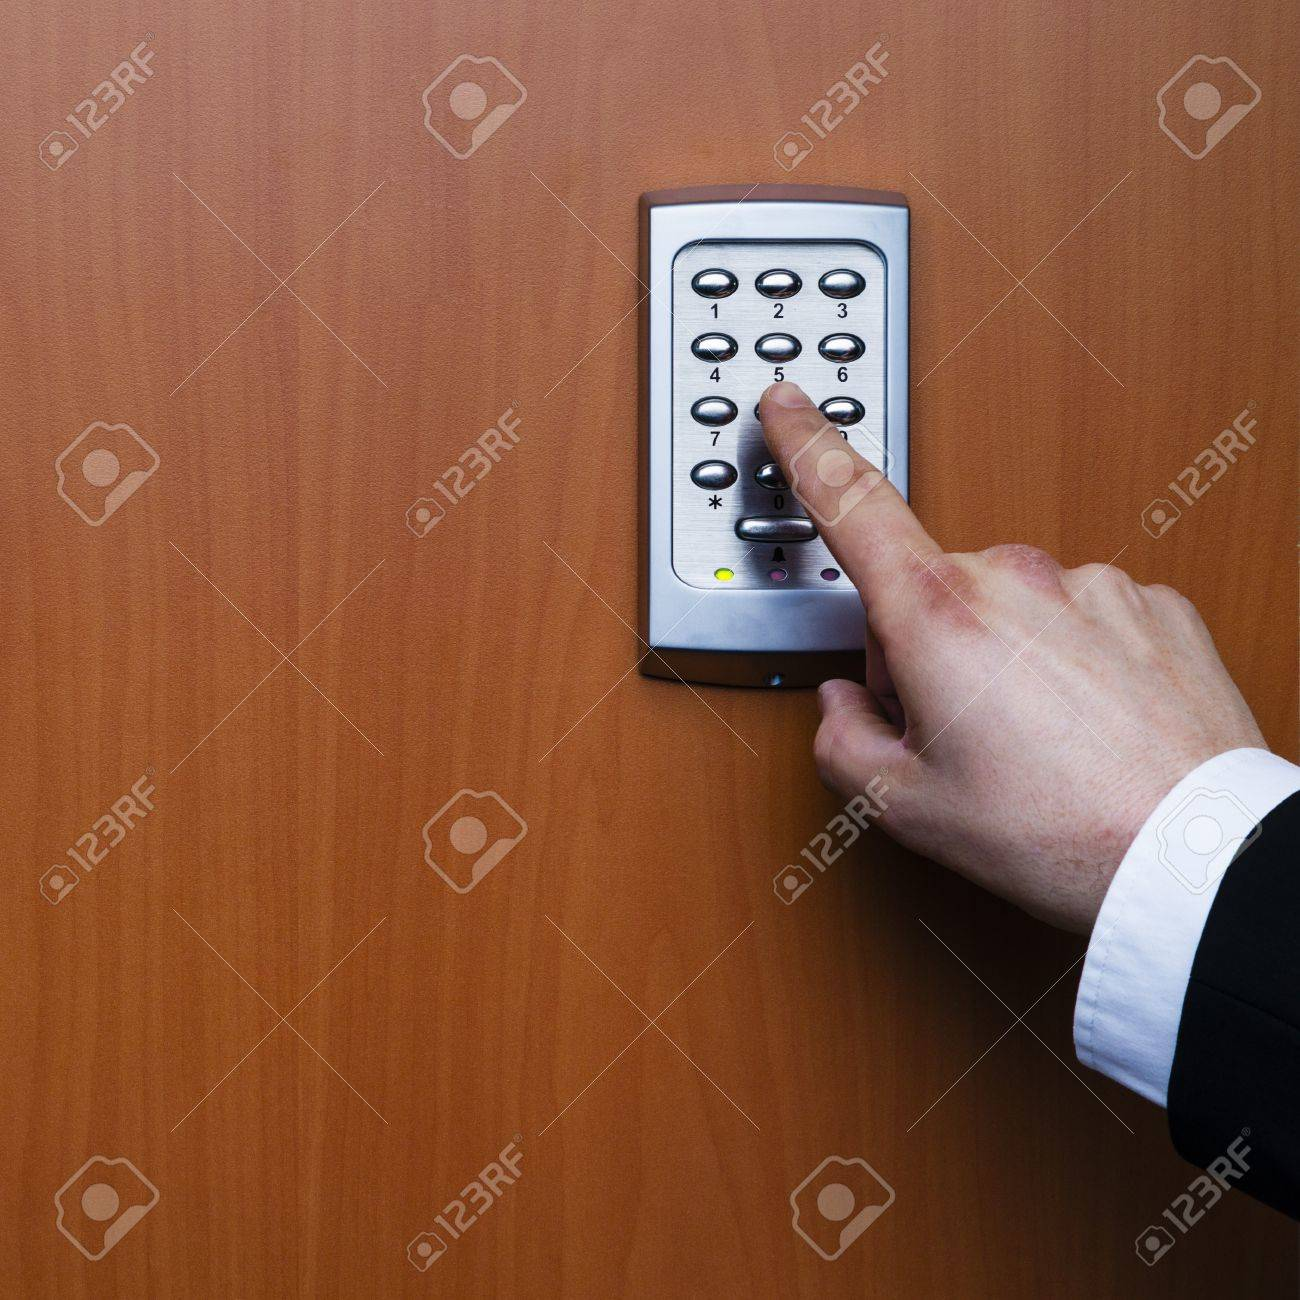 electronic key system to lock and unlock doors Stock Photo - 17629399 & Electronic Key System To Lock And Unlock Doors Stock Photo Picture ...